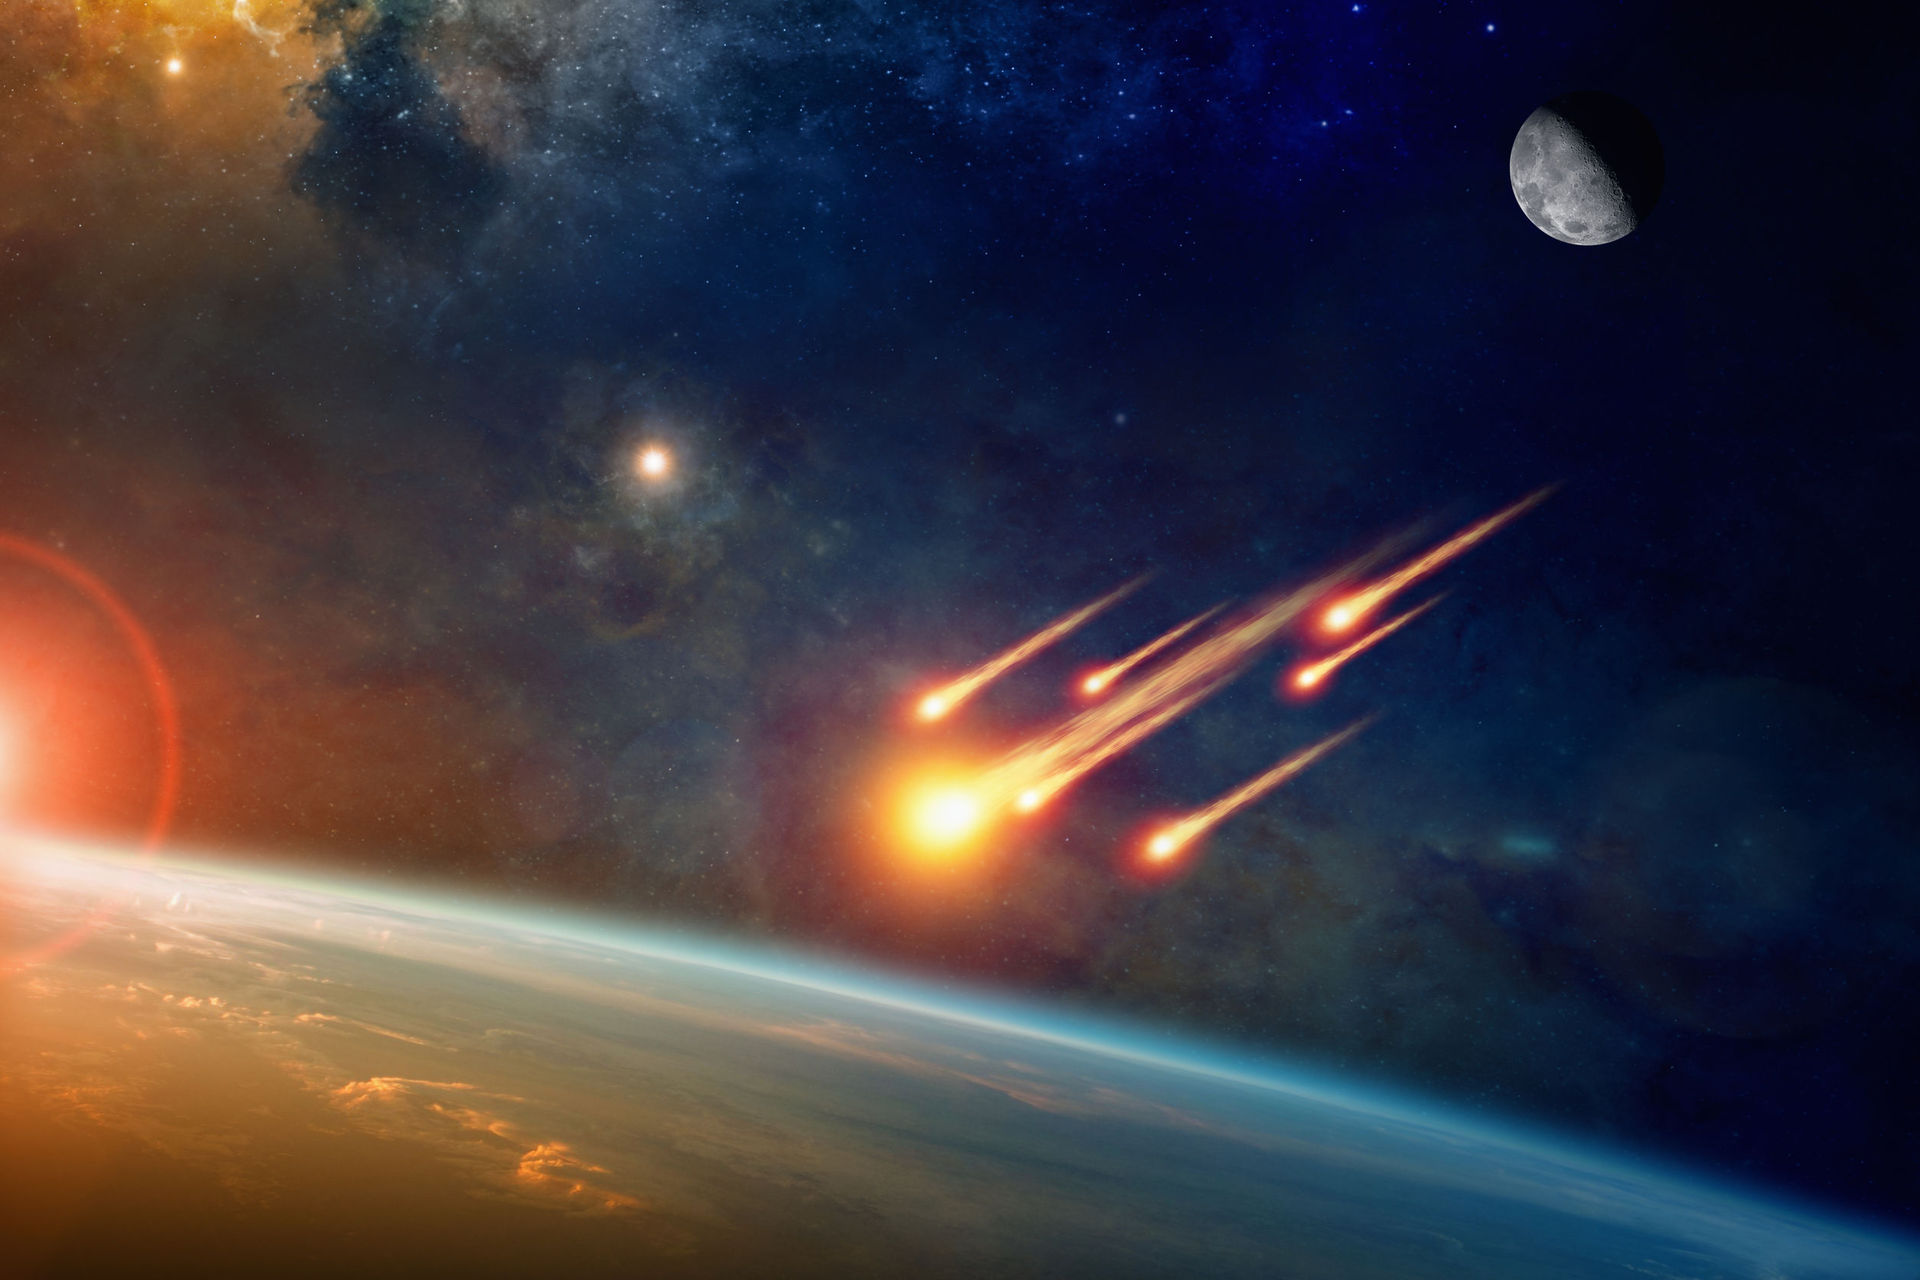 Three large asteroids prompt Nasa to issue near-Earth object